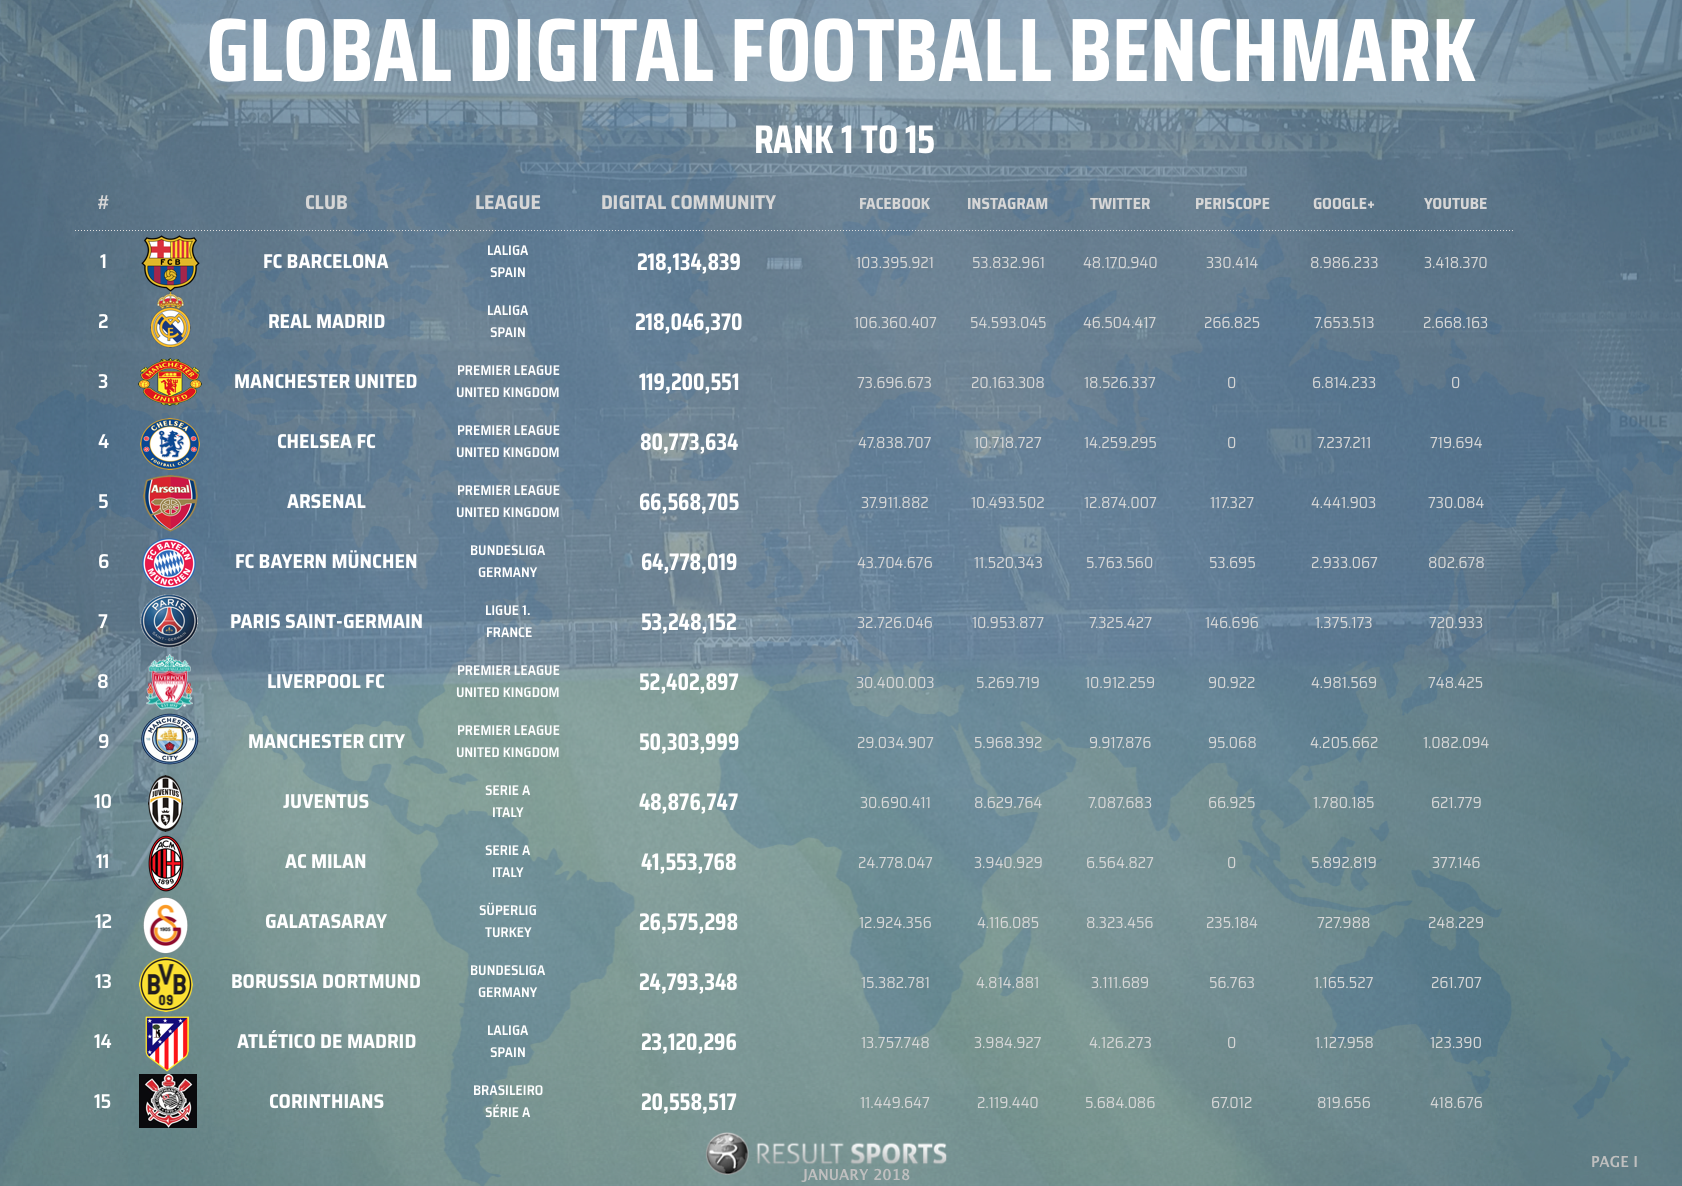 Global Football Benchmark - January 2018 - 1-15 - NEW LOOK.png